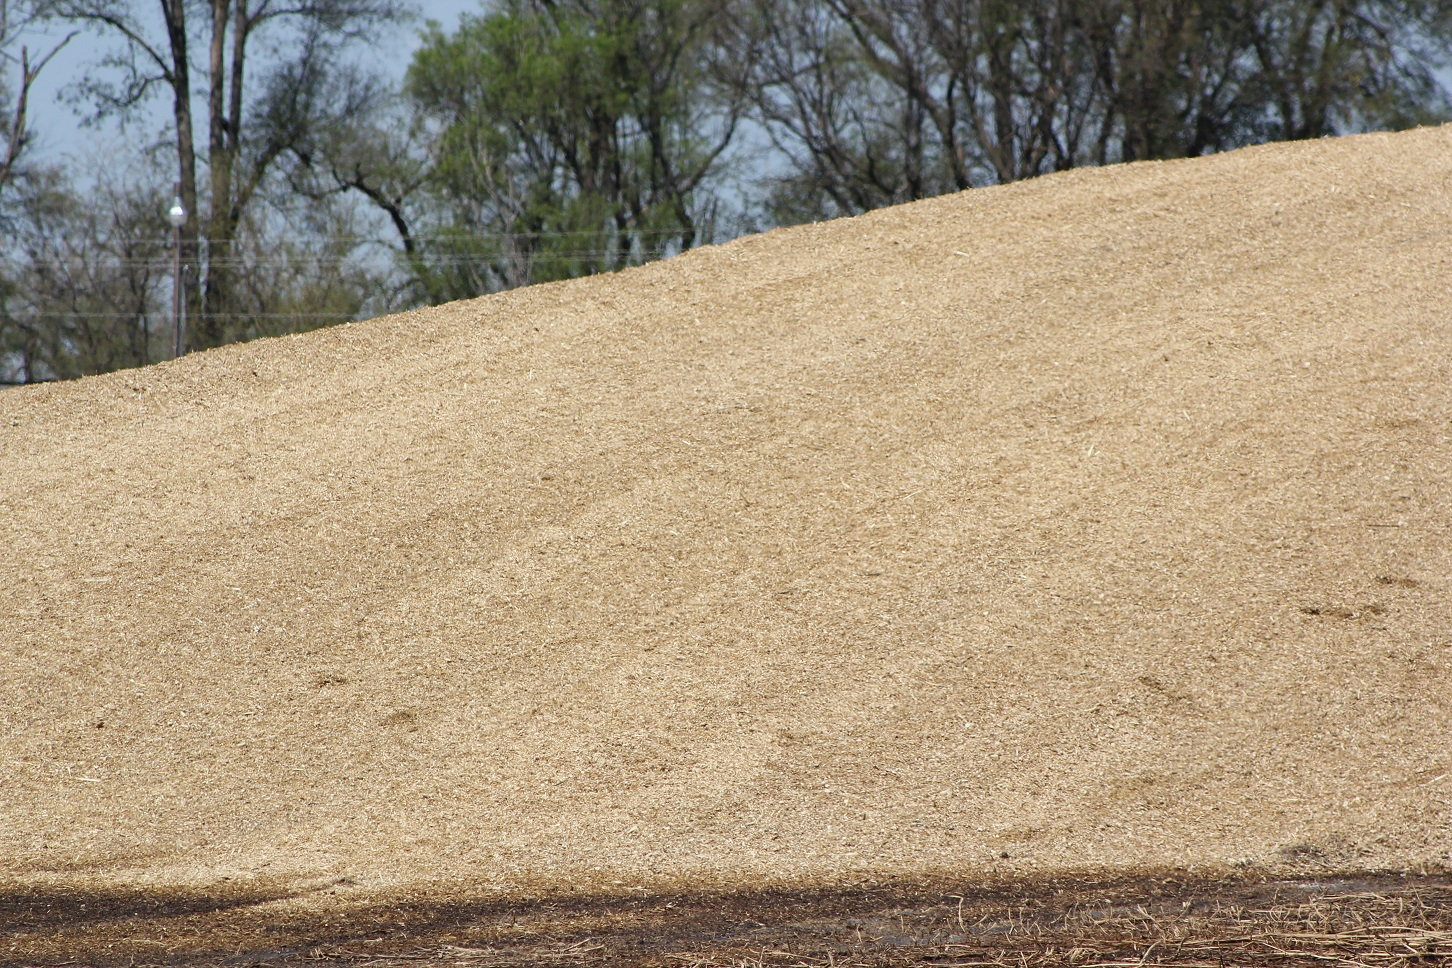 If silage is not correctly packed into a bunker (or bagged or put in silos), oxygen will remain in the pile which leads to greater shrink losses. Photo courtesy of Troy Walz.